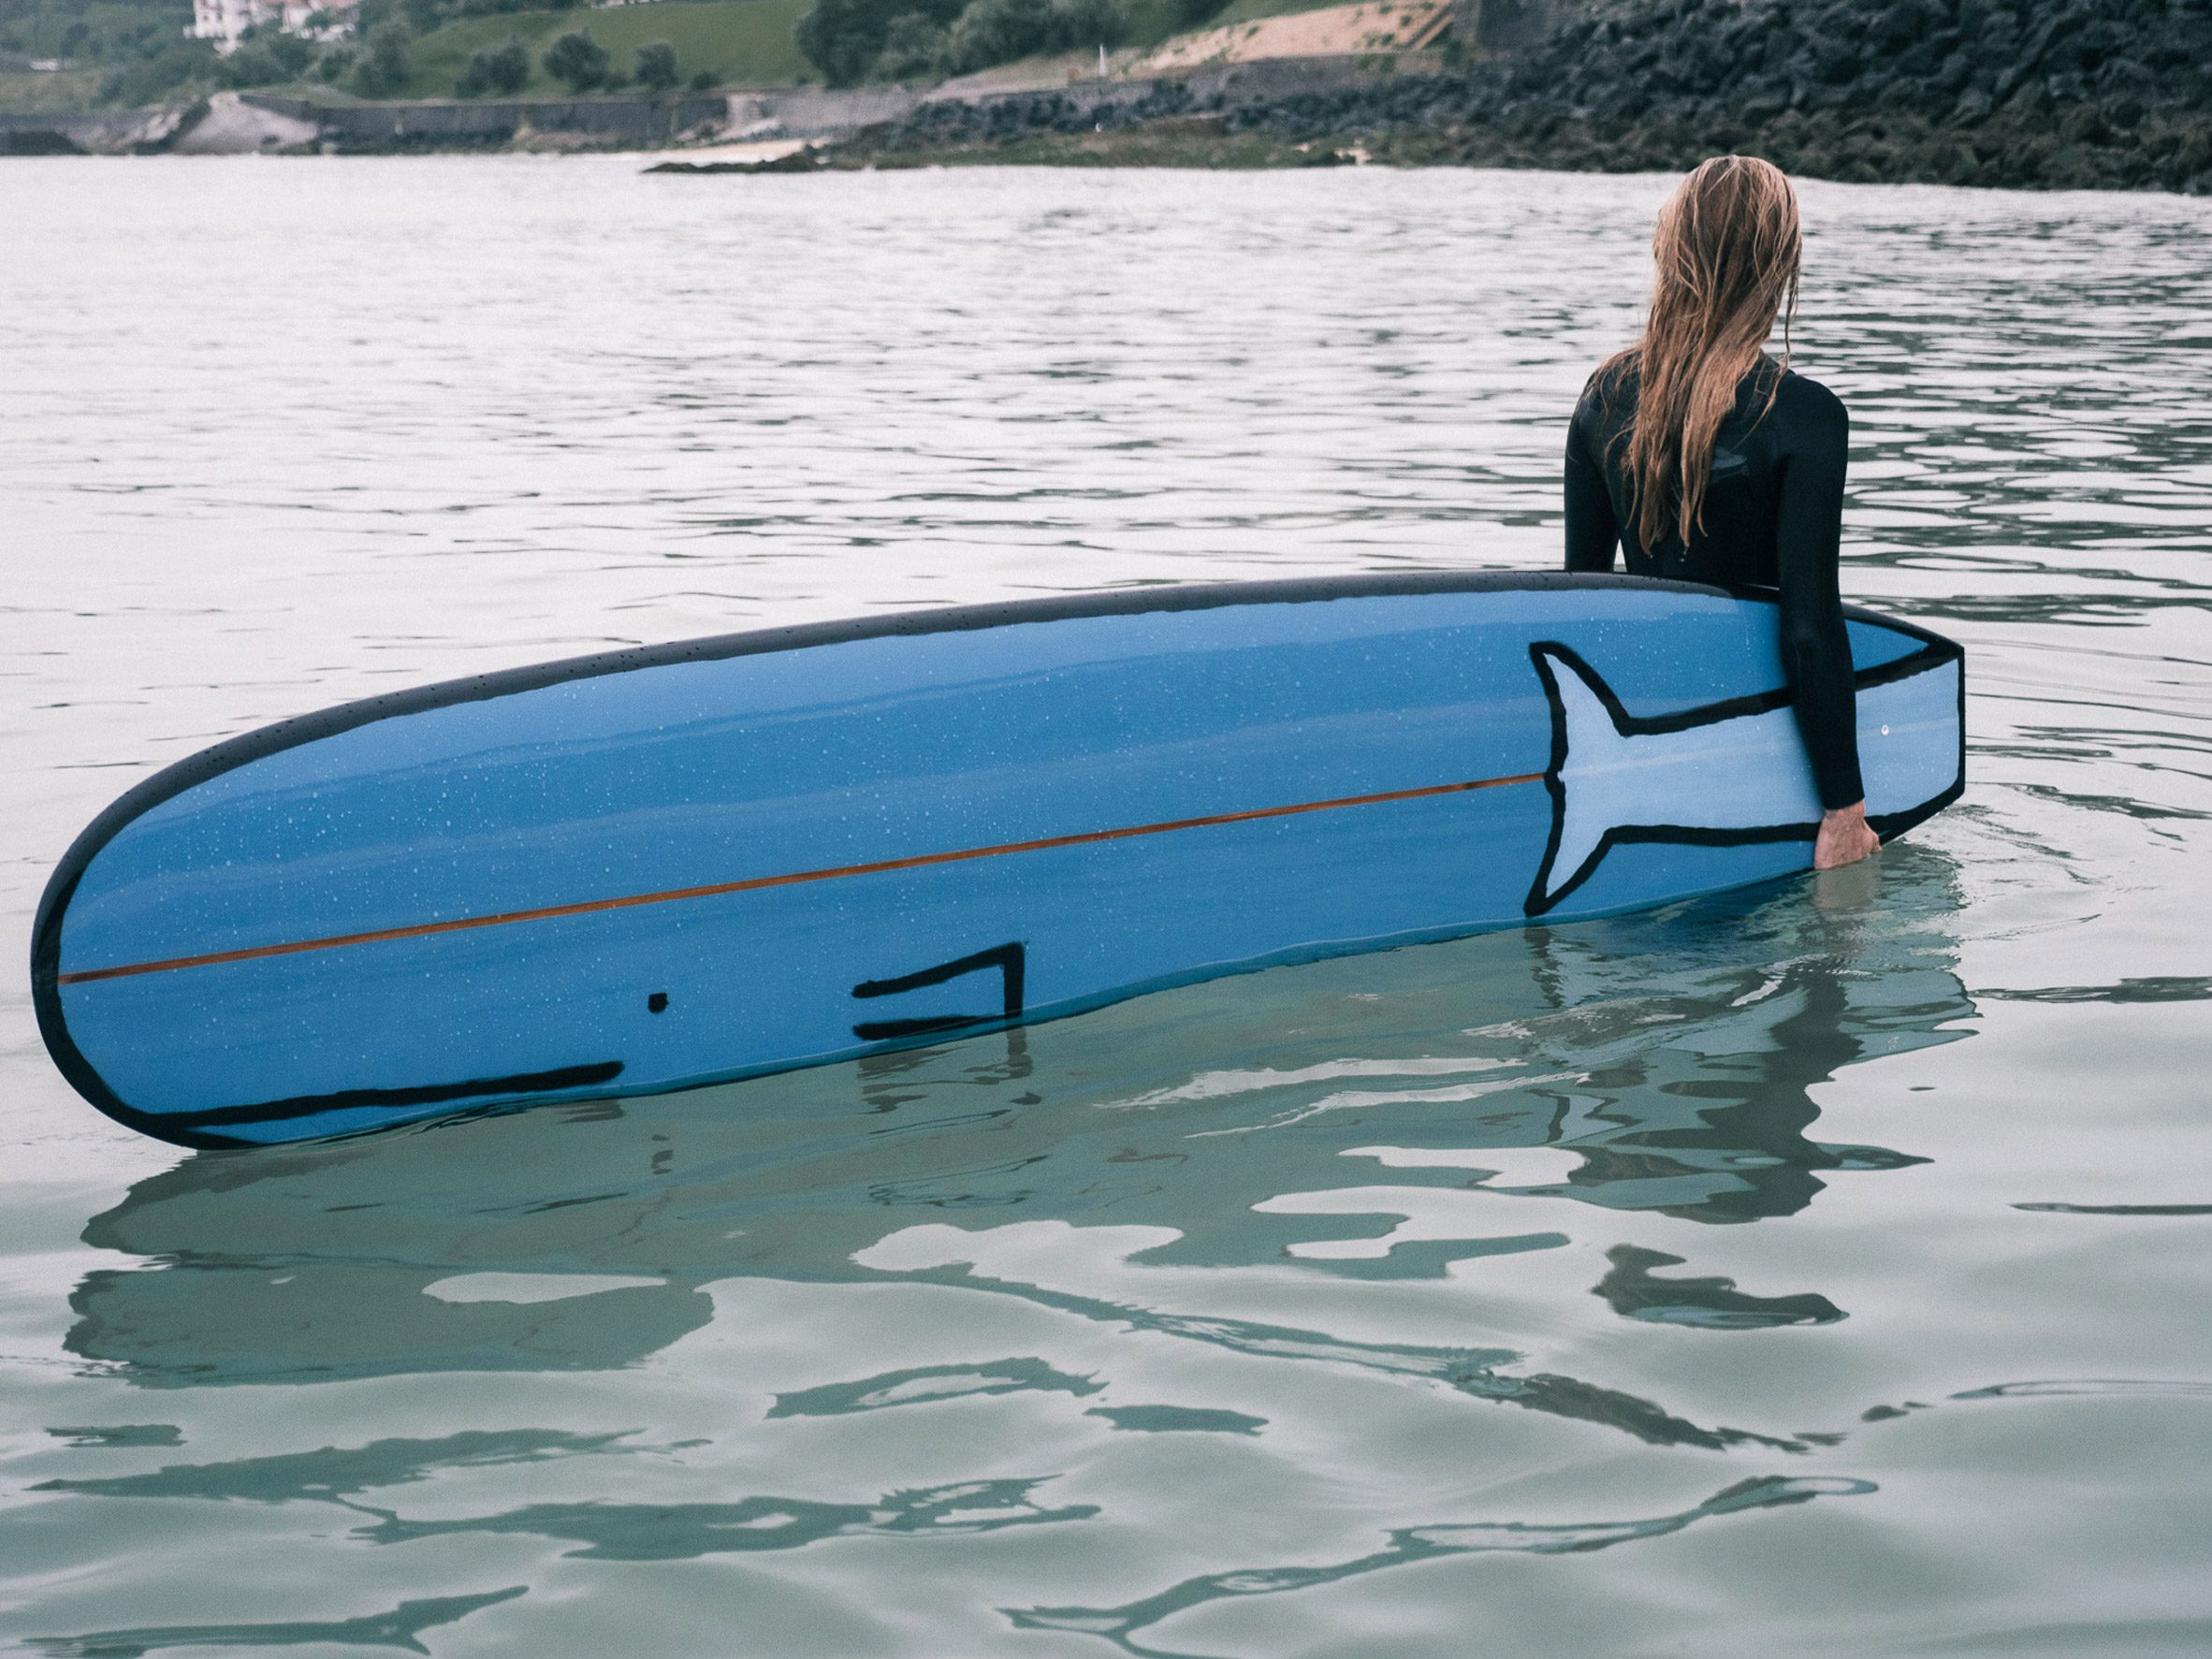 The project was completed in collaboration with Fernand Surfboards